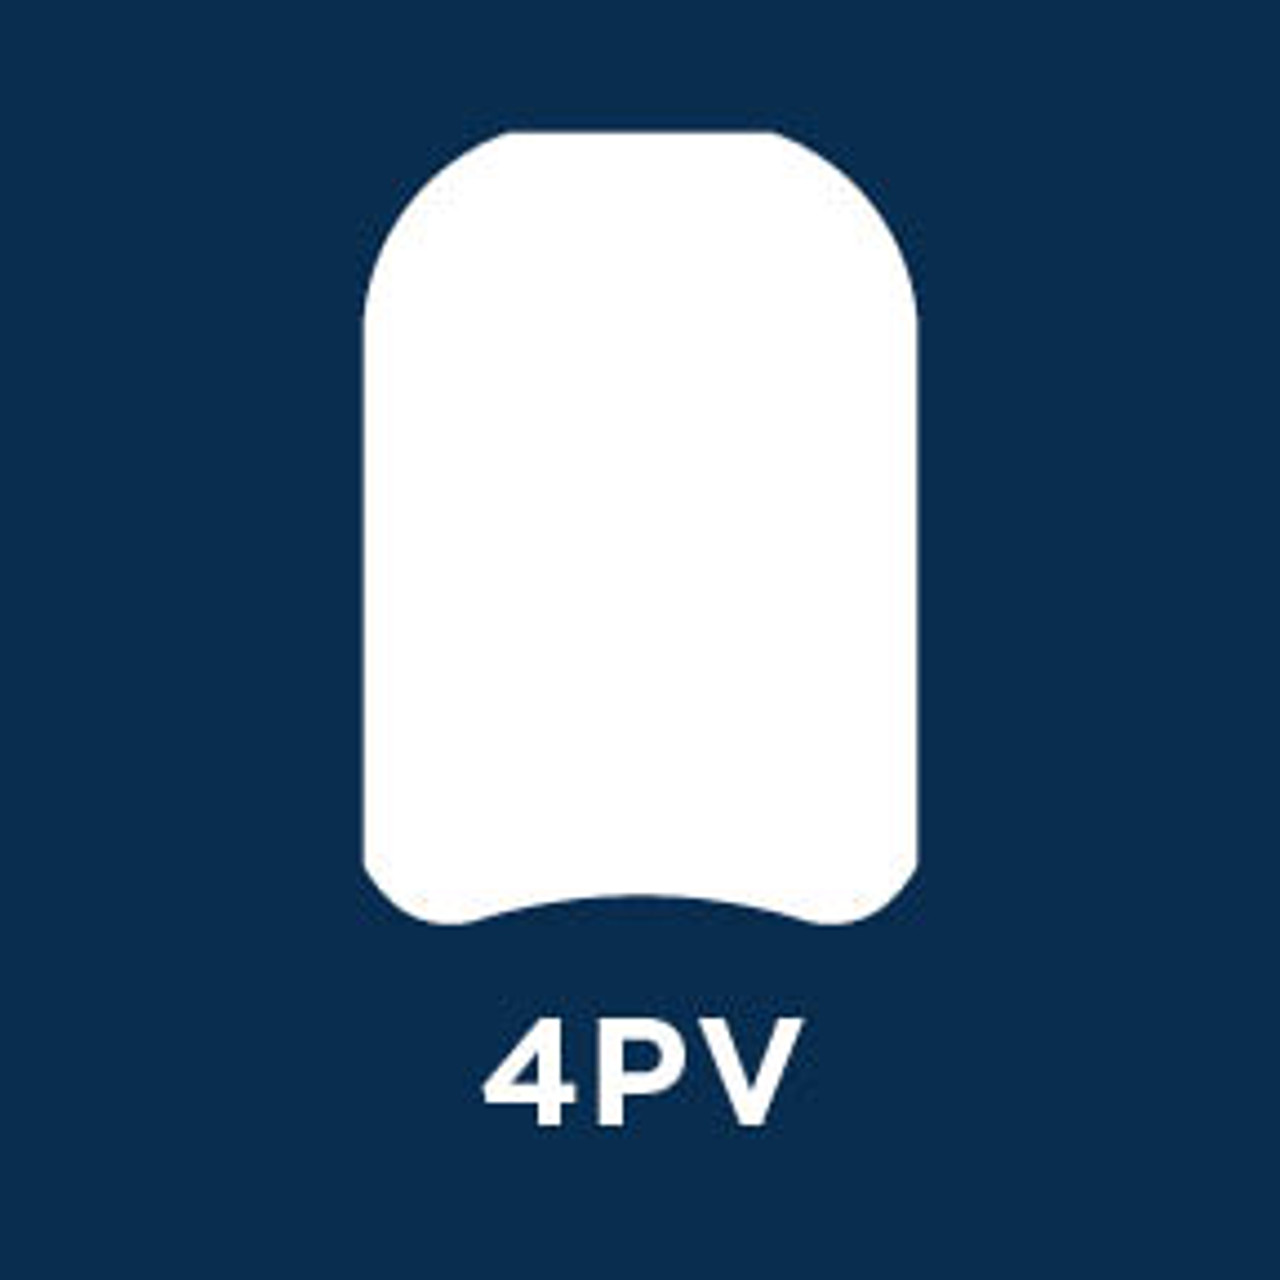 This vest is compatible with the 4PV cut: